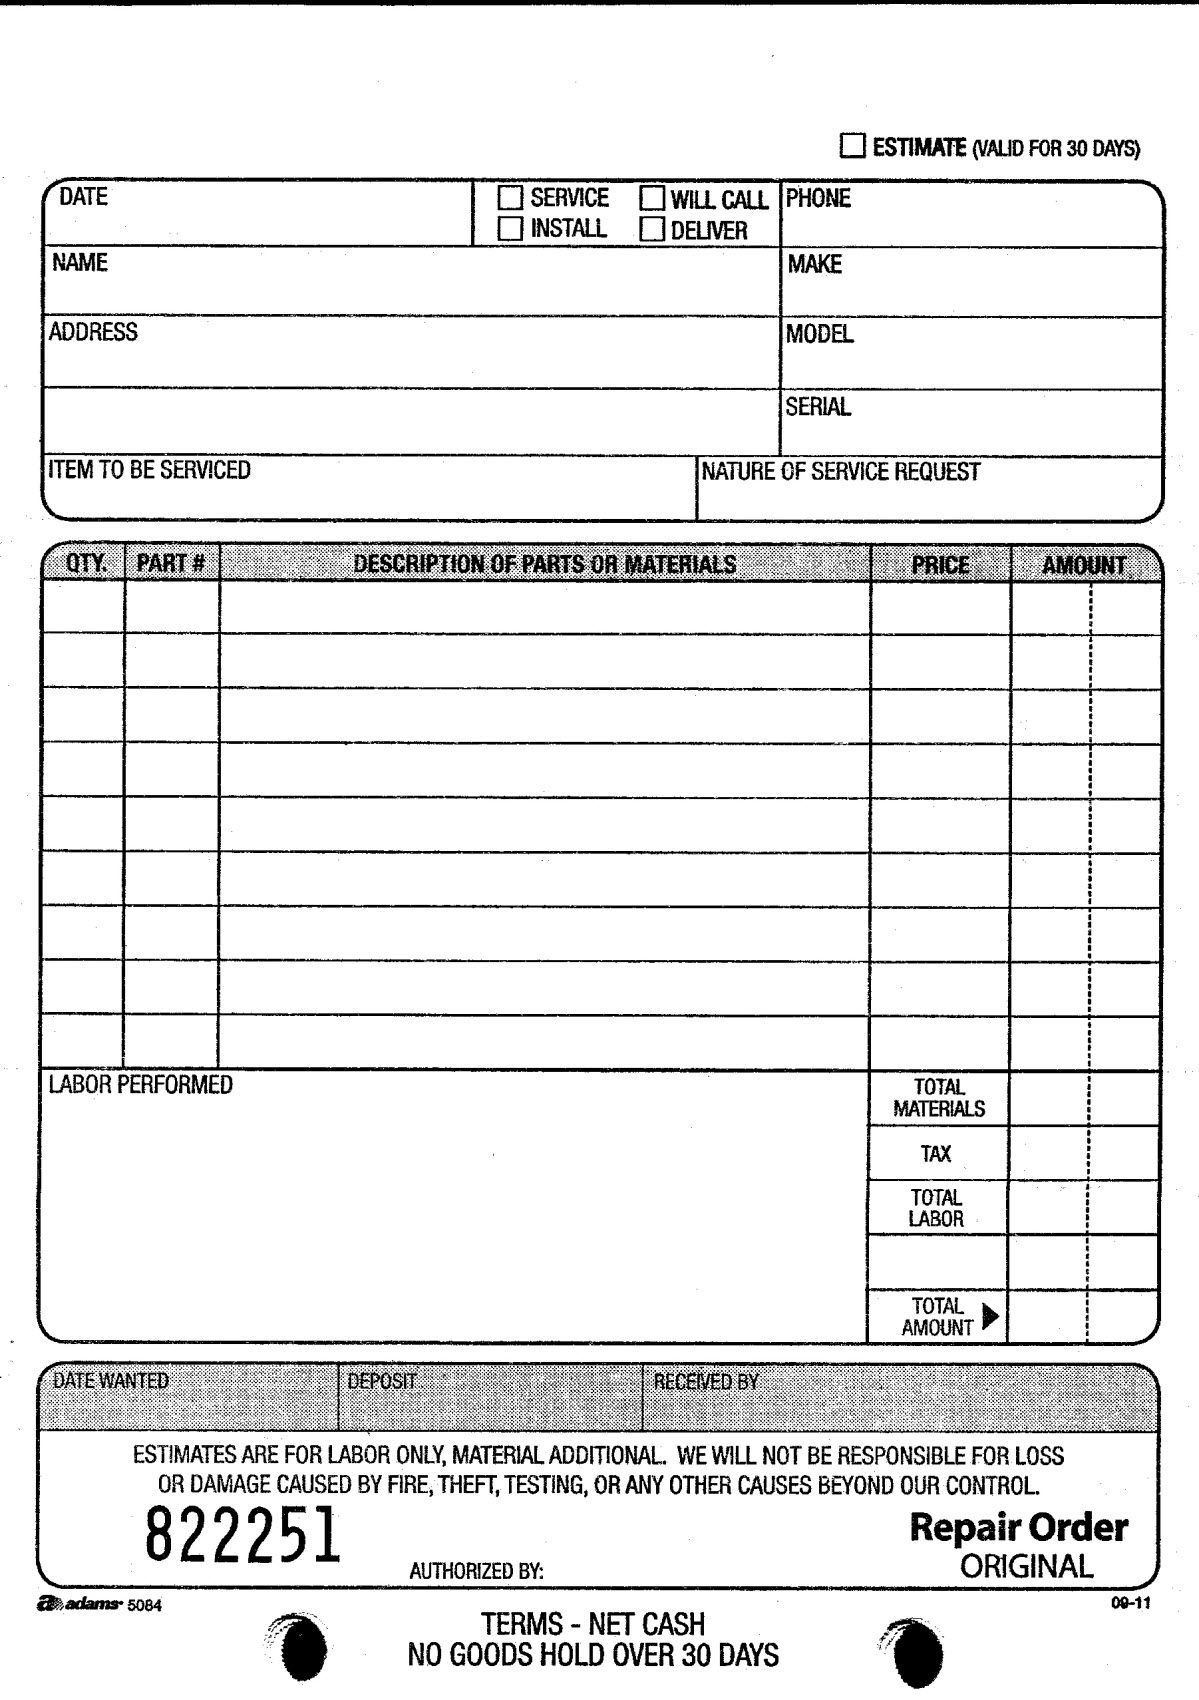 adams d5084 repair order book